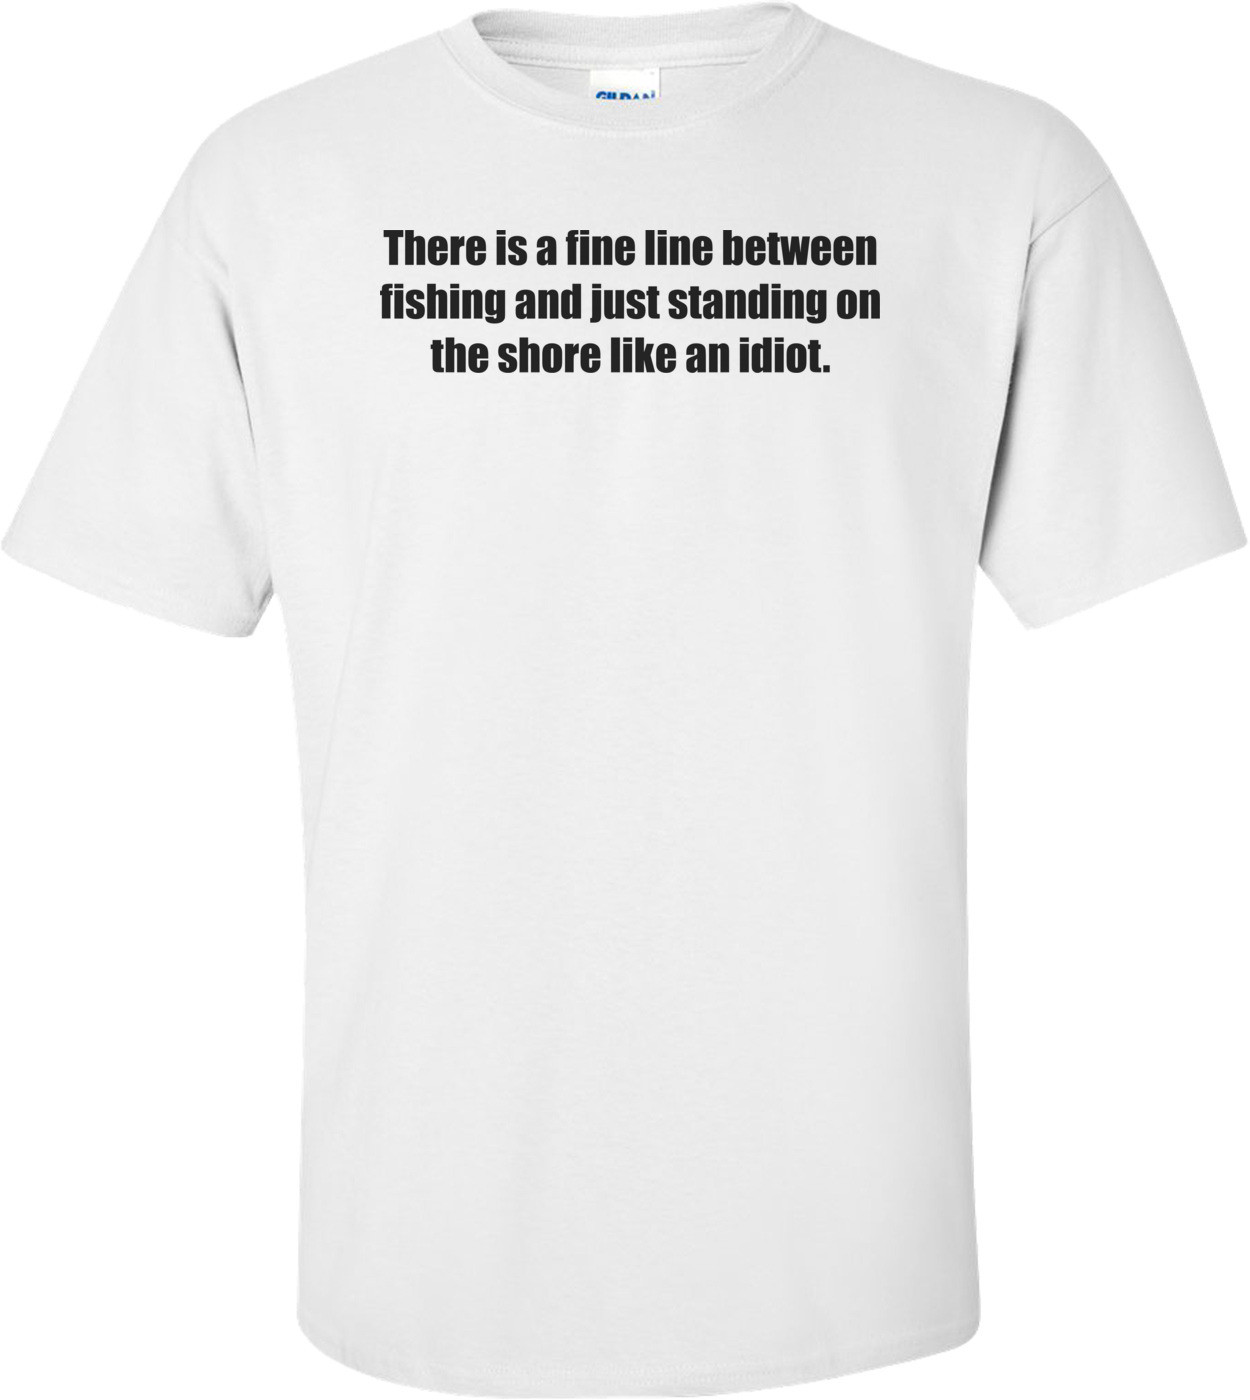 There is a fine line between fishing and just standing on the shore like an idiot. Shirt